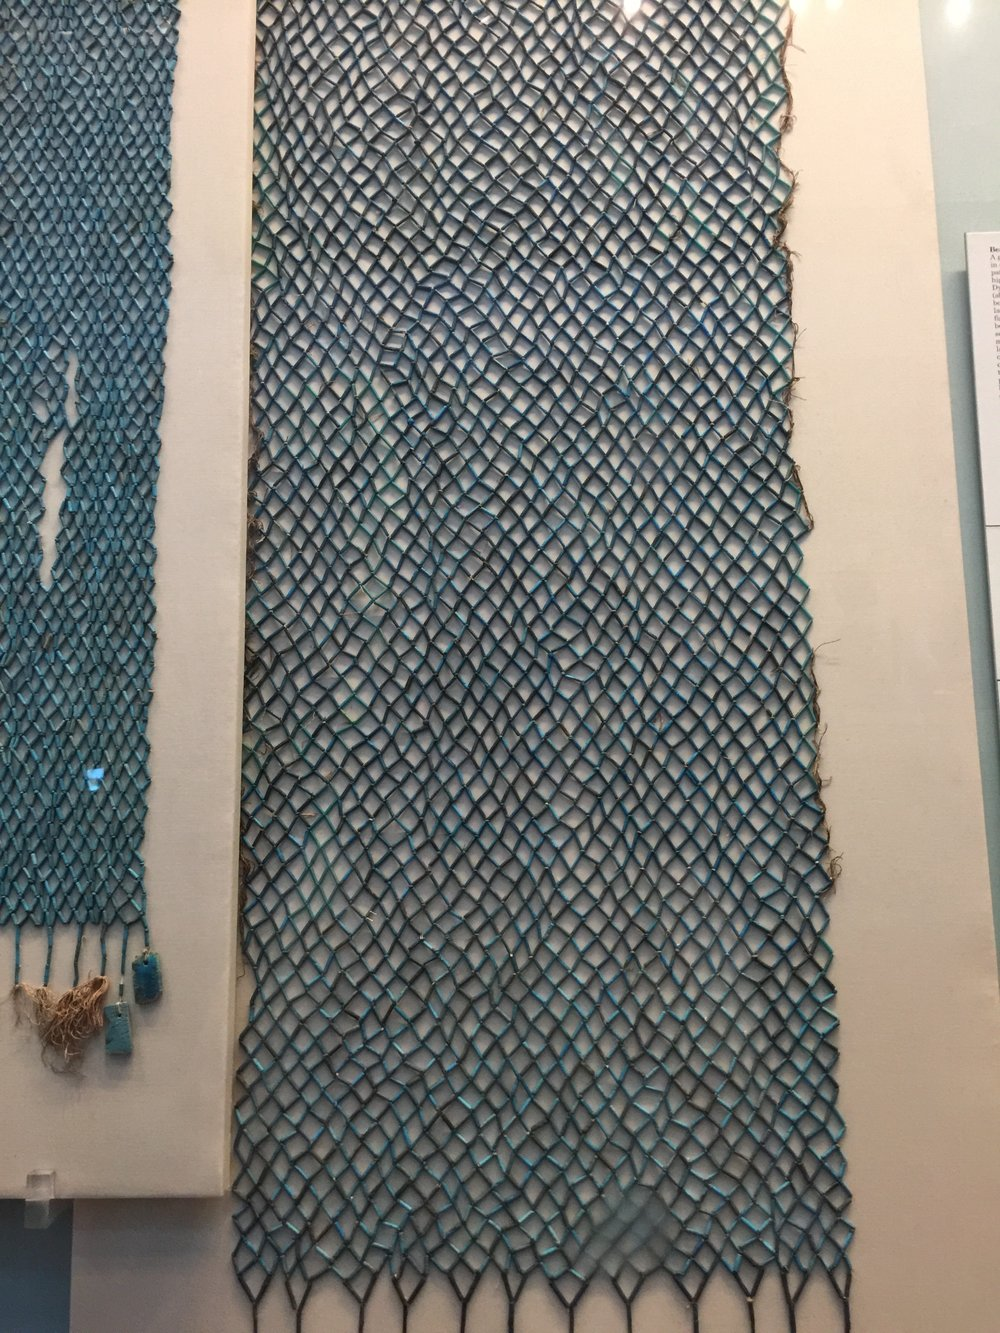 Faience bead-net belonging to the mummy Takhebkhenem. While on display, the original threads had rotted away. Conservation work included rethreading alongside surviving original thread and replacing lost beads with modern ones painted to match.